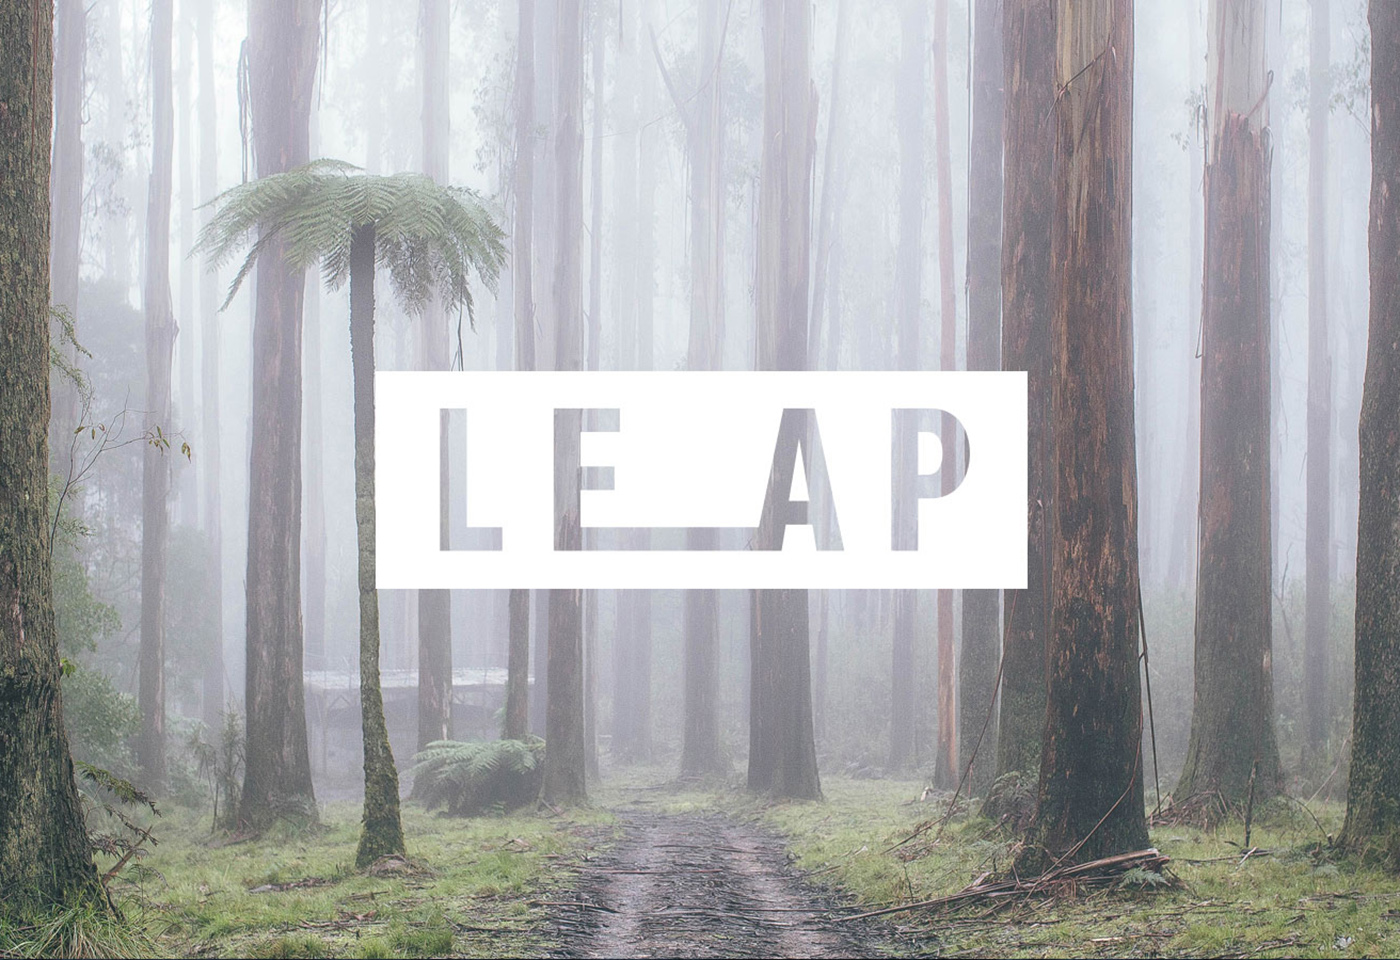 Foggy forest landscape image for LEAP by Julian Lallo